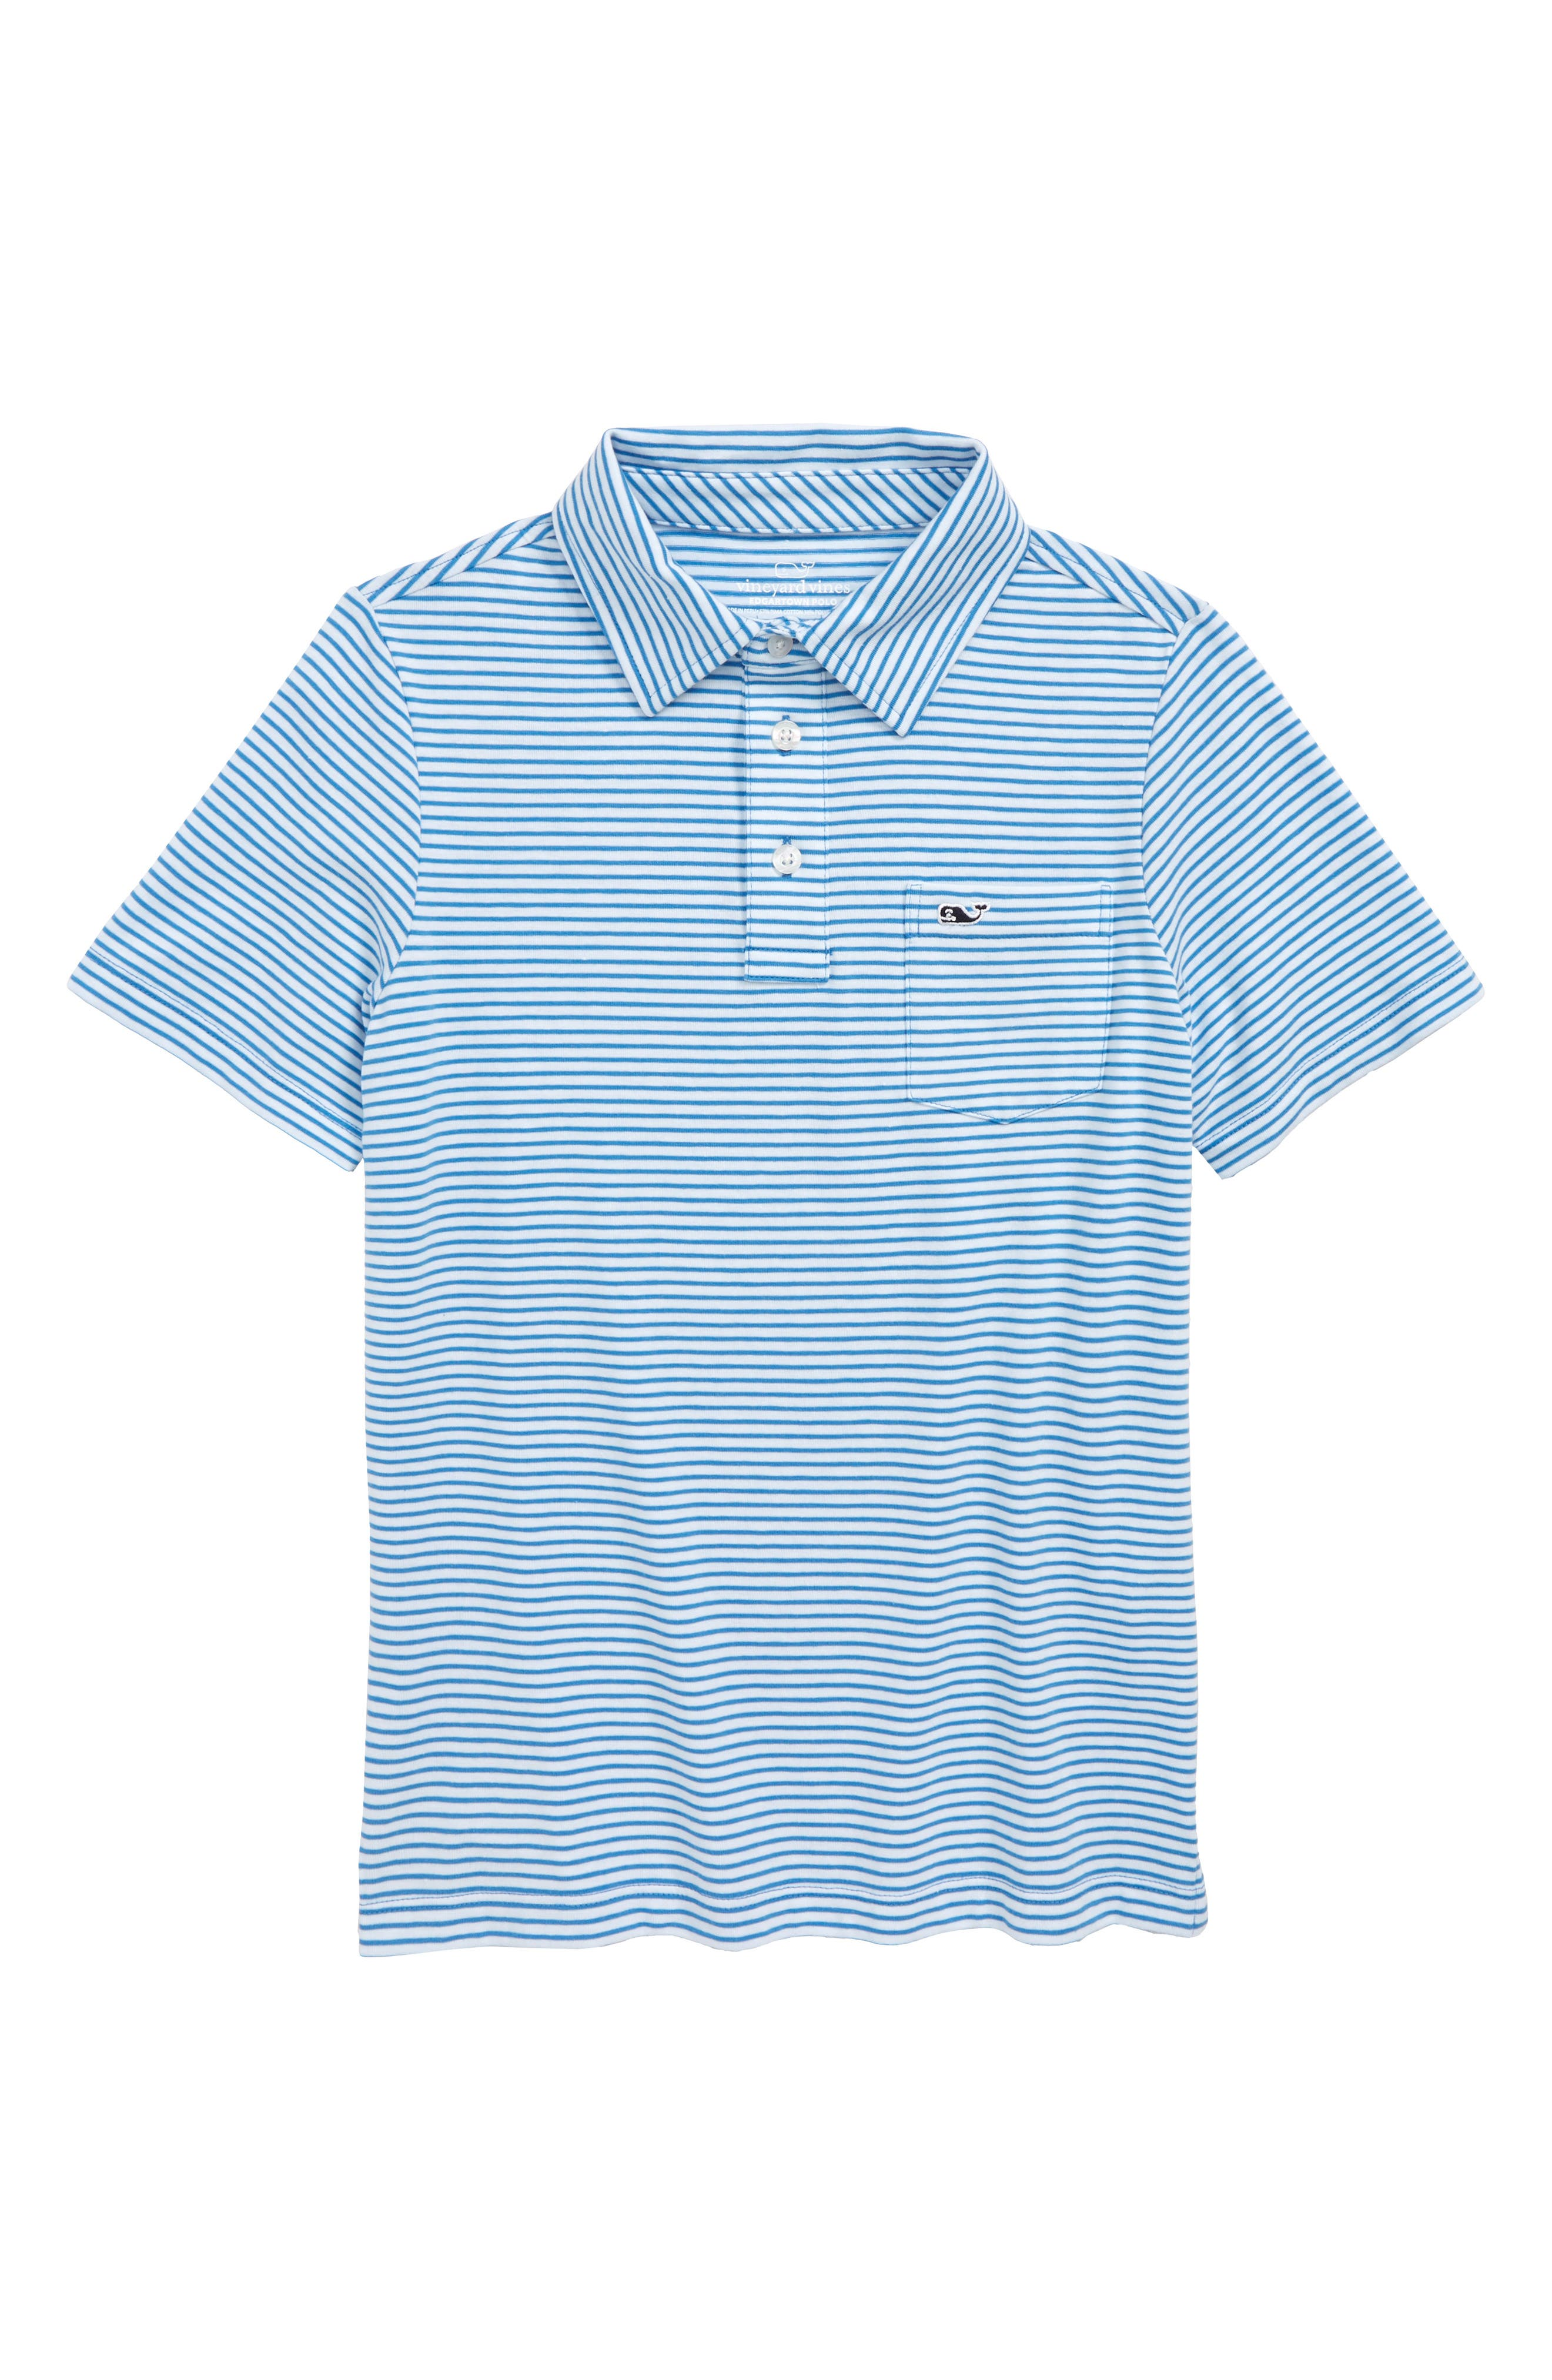 Edgartown Stripe Polo,                             Main thumbnail 1, color,                             HULL BLUE